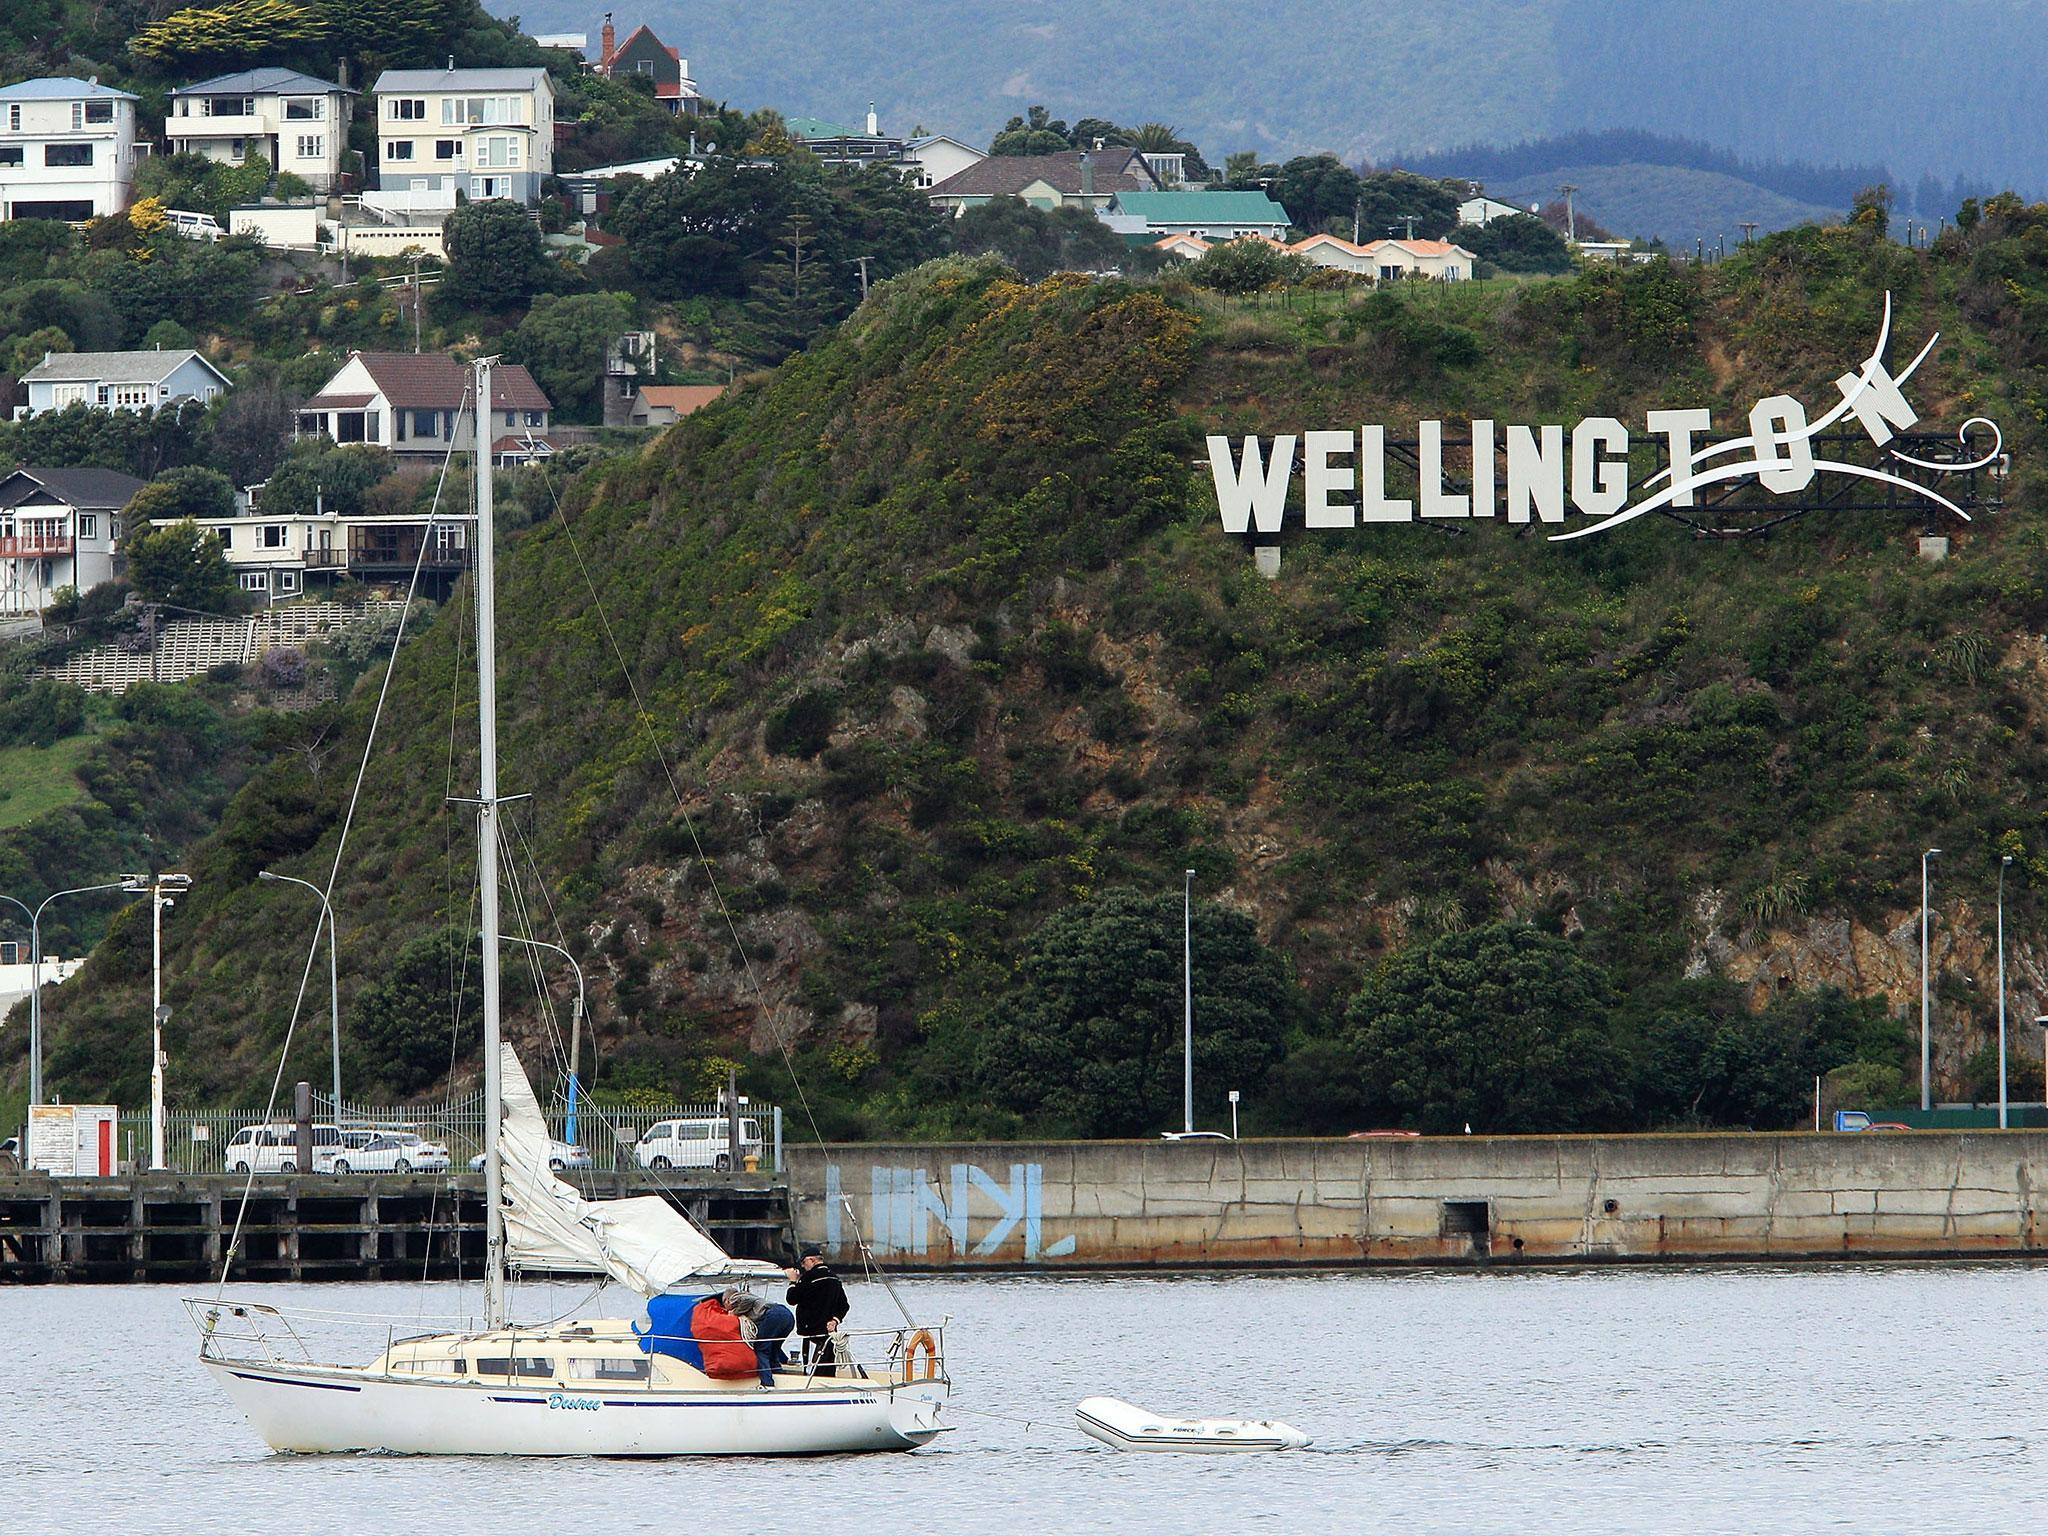 13. Wellington, New Zealand